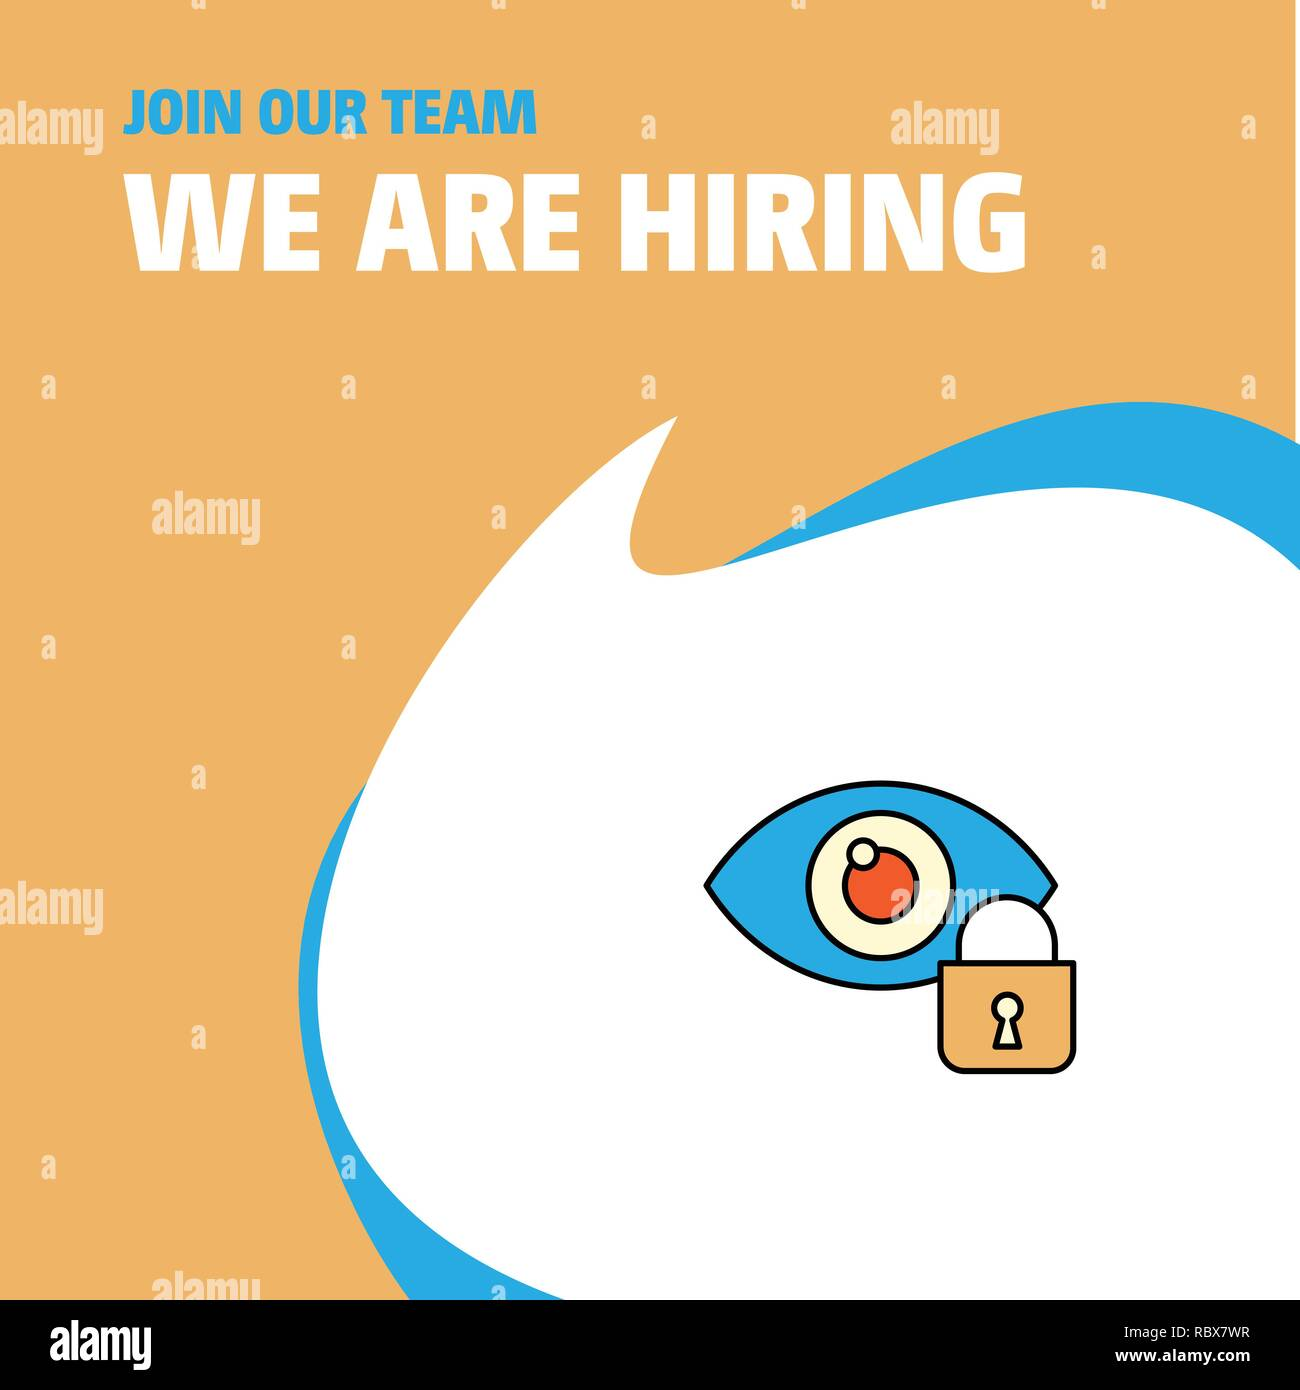 Join Our Team Busienss Company Eye Locked We Are Hiring Poster